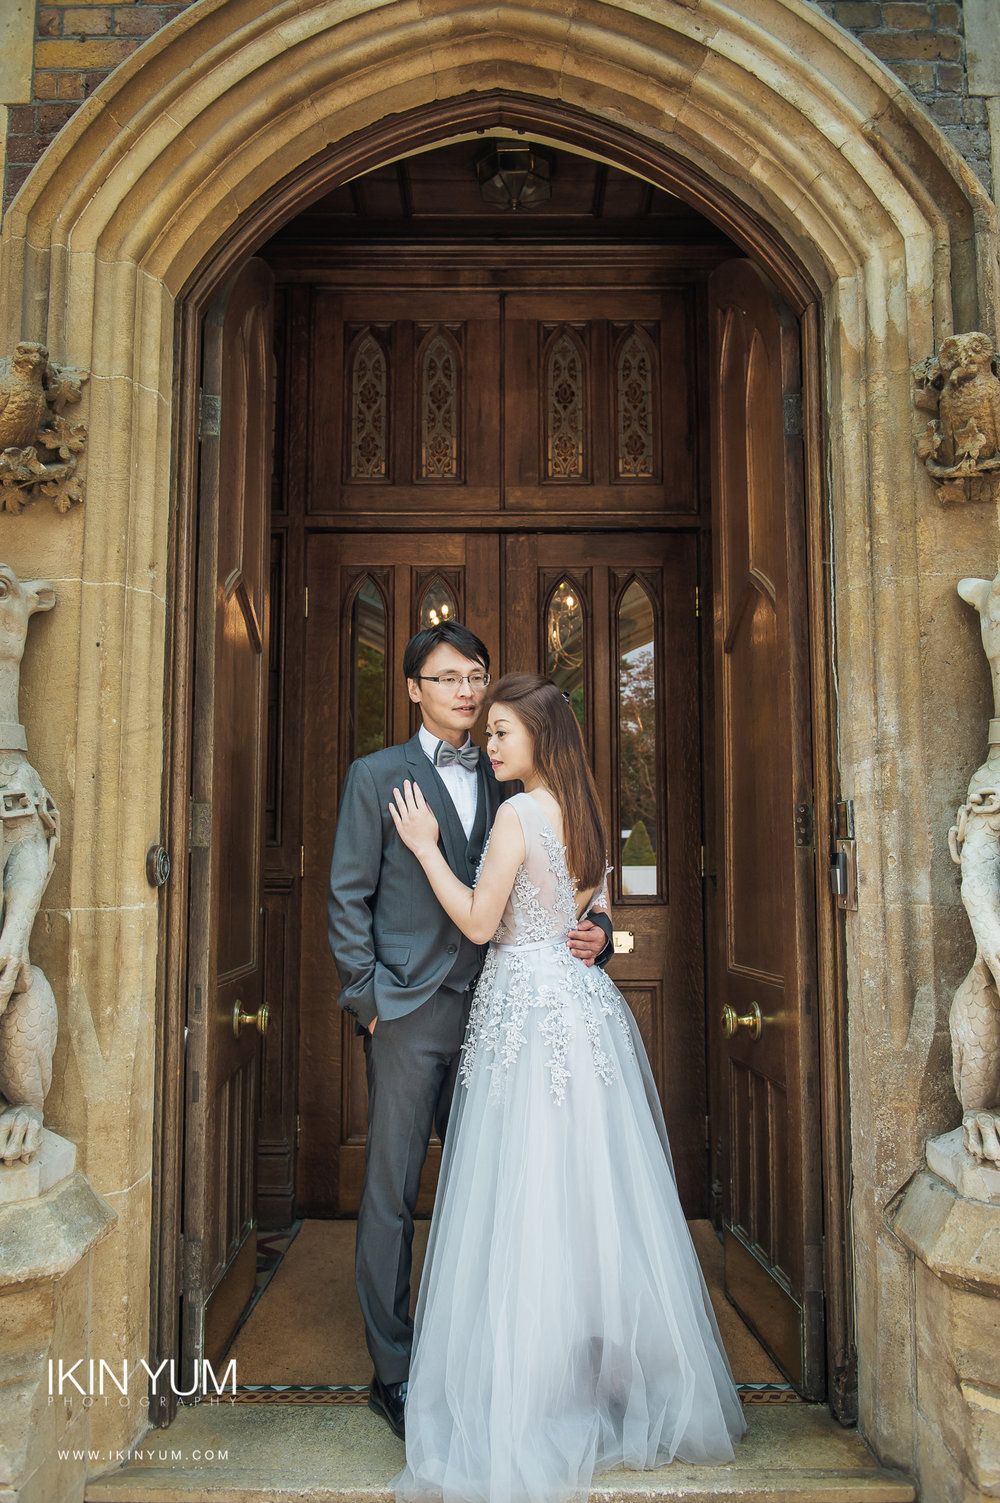 The oakley court Pre-Wedding Shoot - Ikin Yum Photography-060.jpg